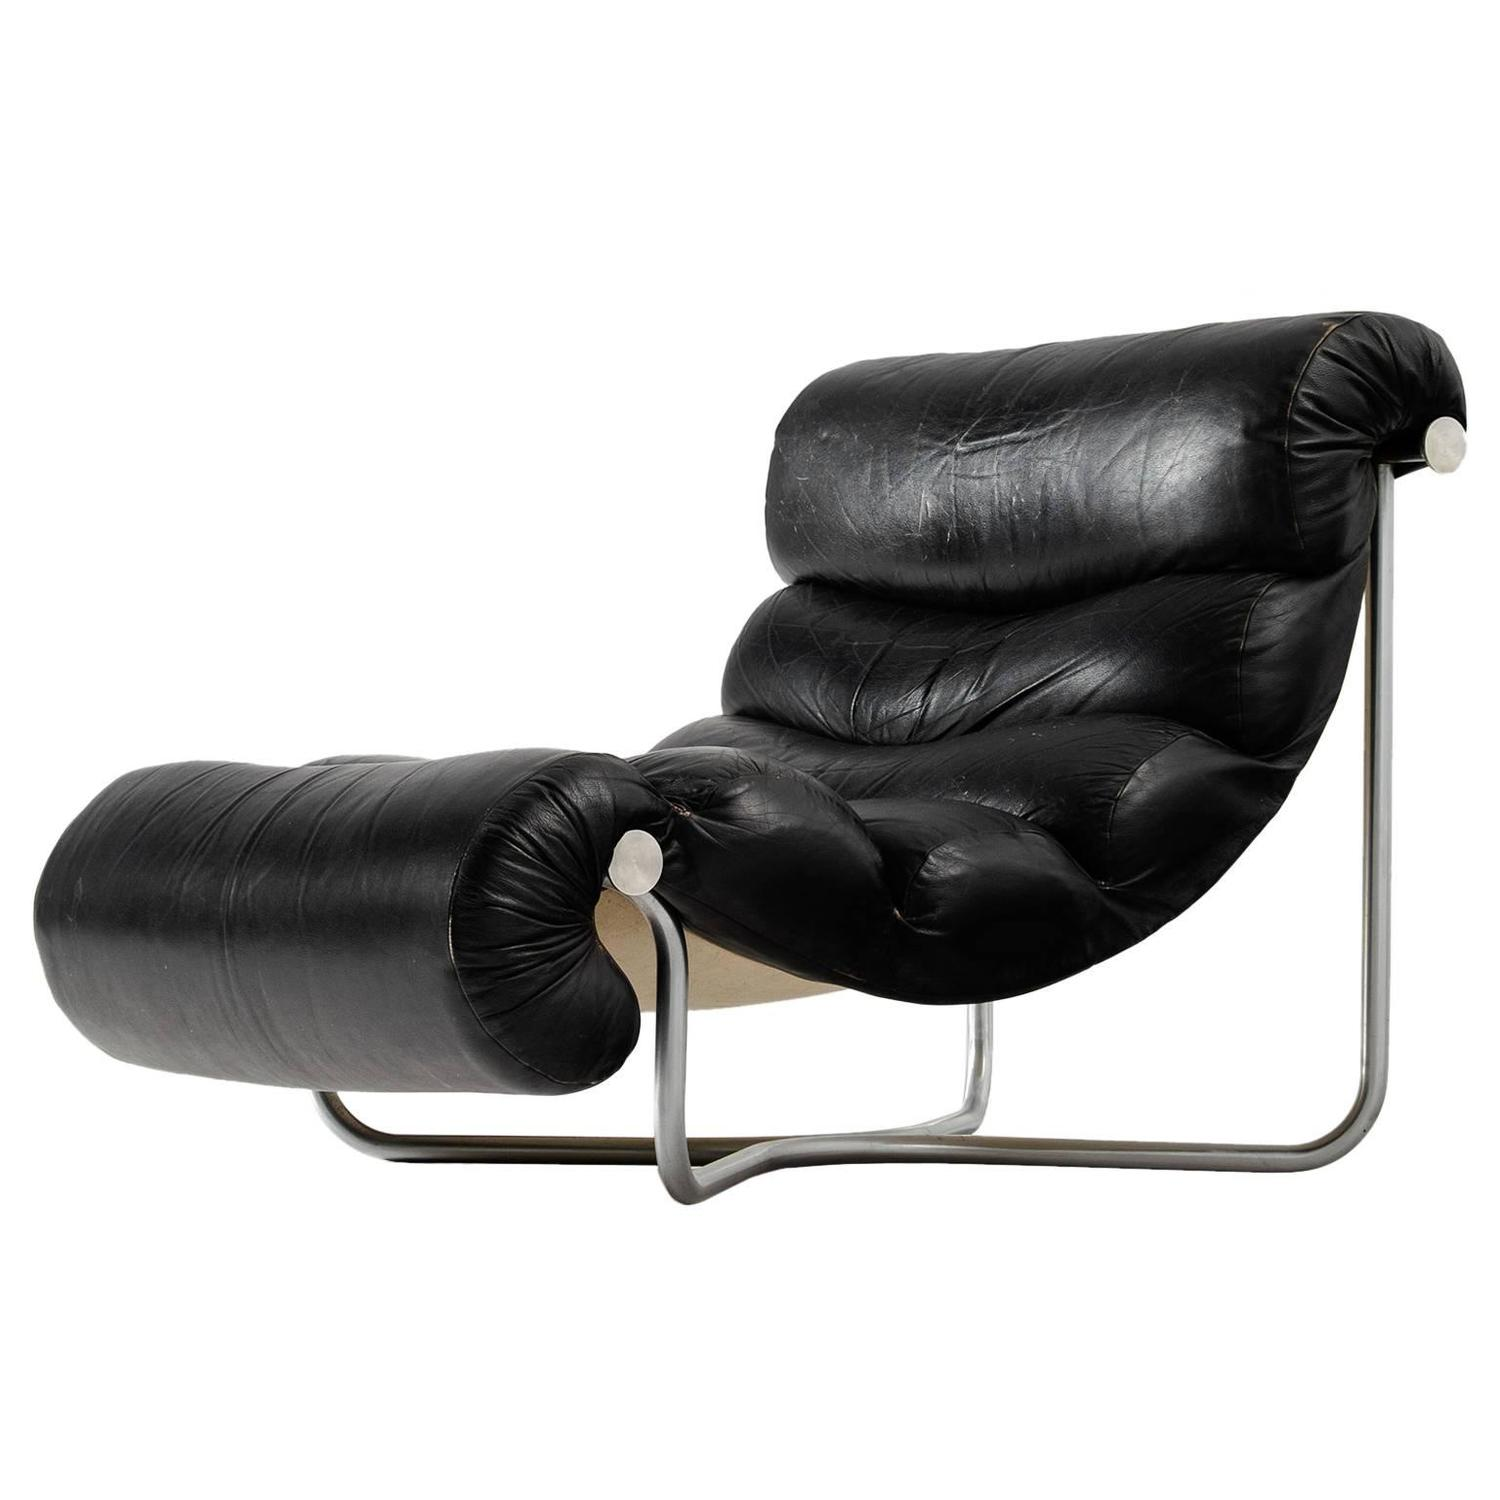 Georges Van Rijck Lounge Chair in Black Leather and Chrome